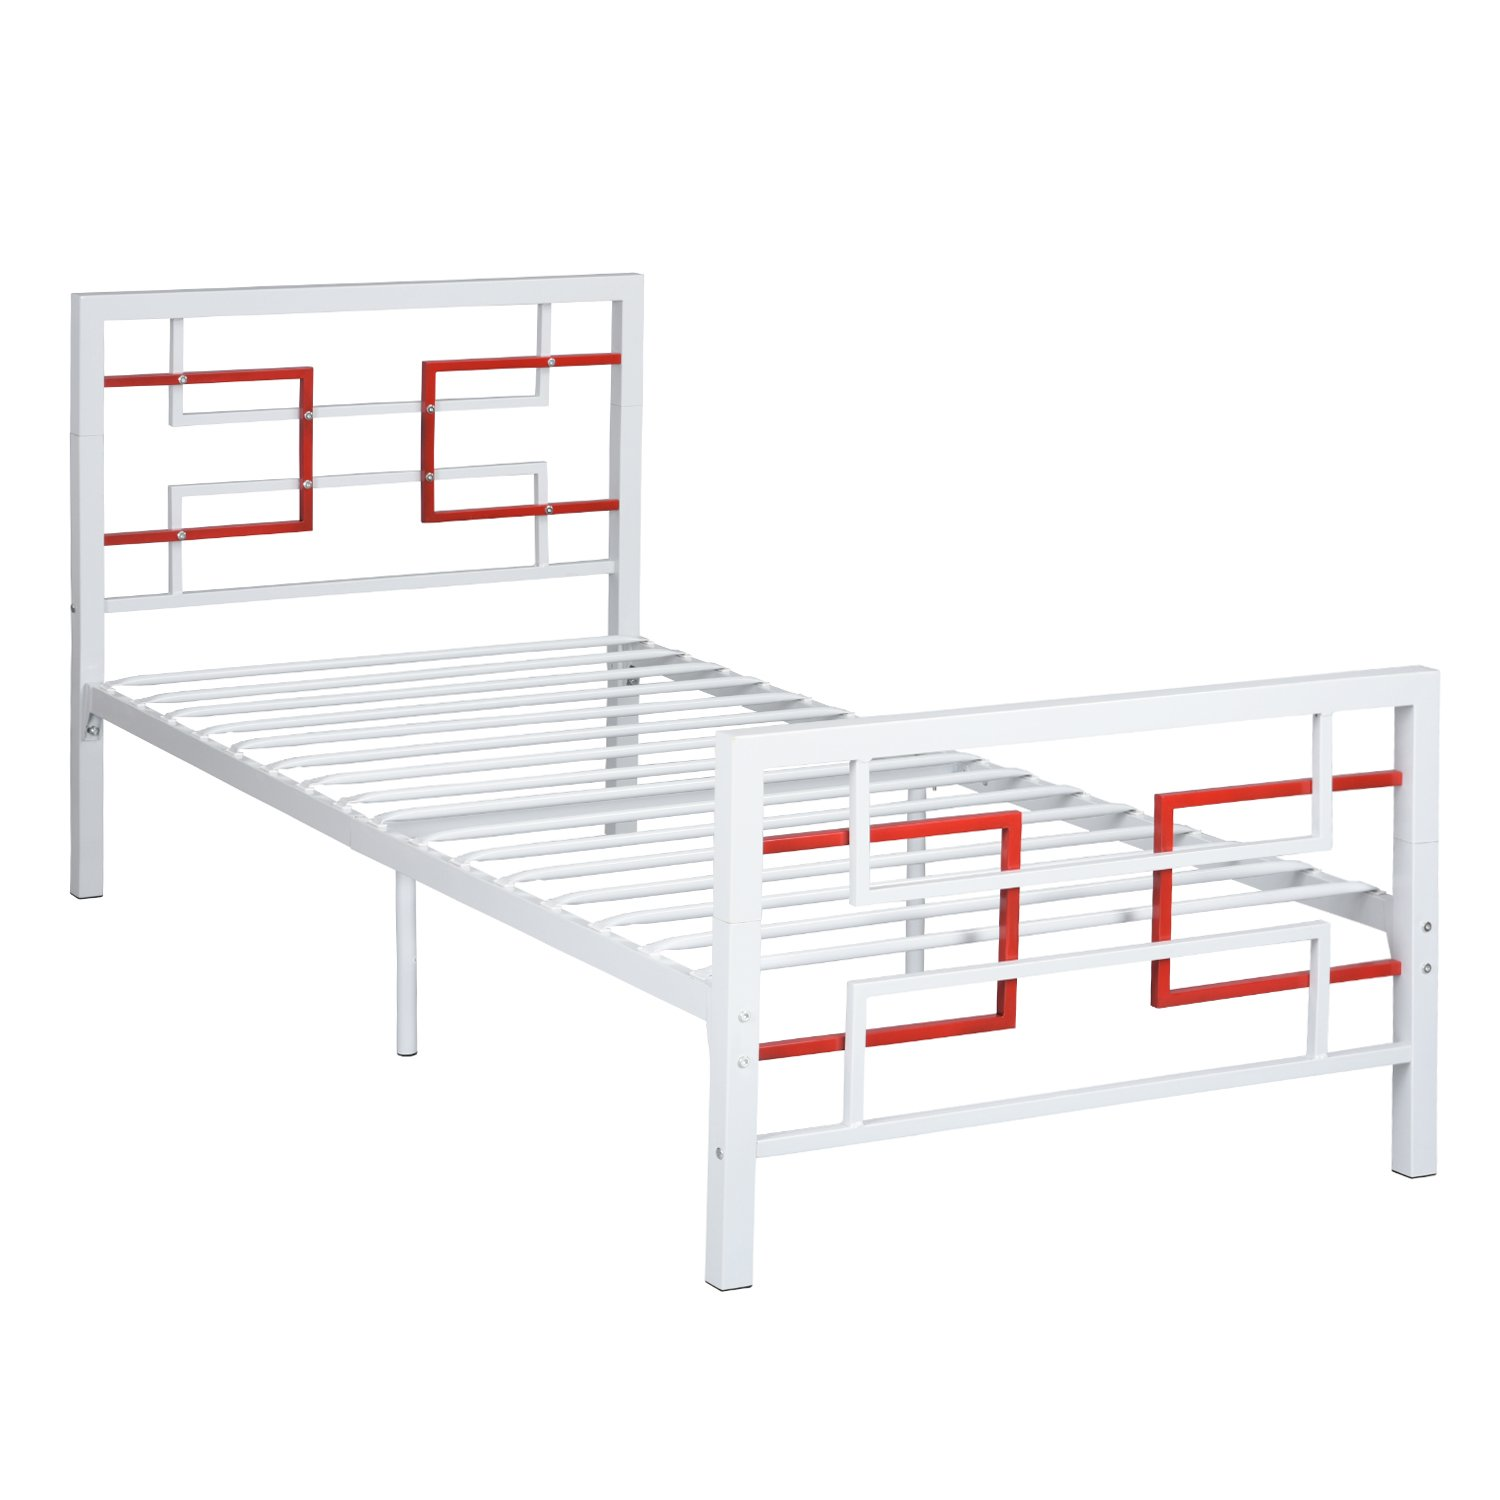 Aingoo Single Metal Bed Frame 3ft Single Beds with Solid Square Tubes for Adults and Children, 90x190 (cm), White